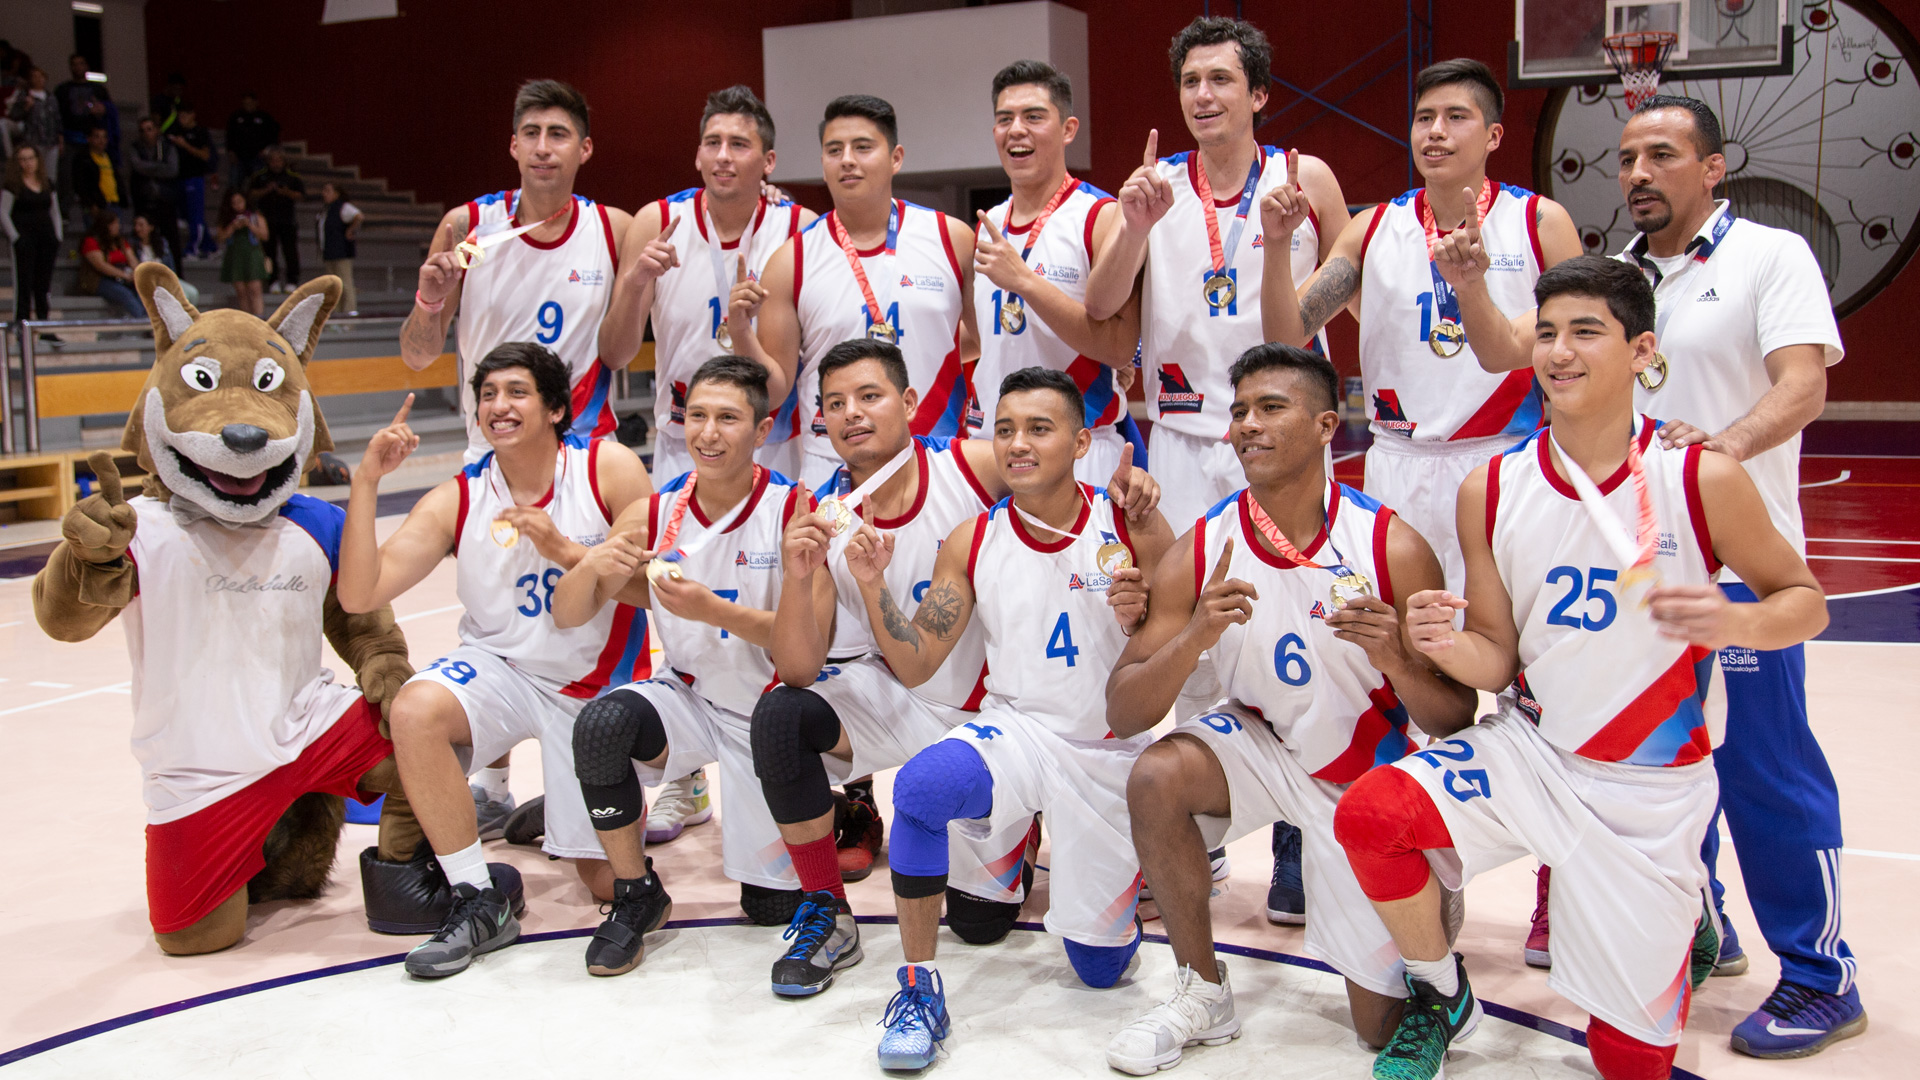 Team celebrates basketball championship win at Universidad La Salle's National Sports Games.